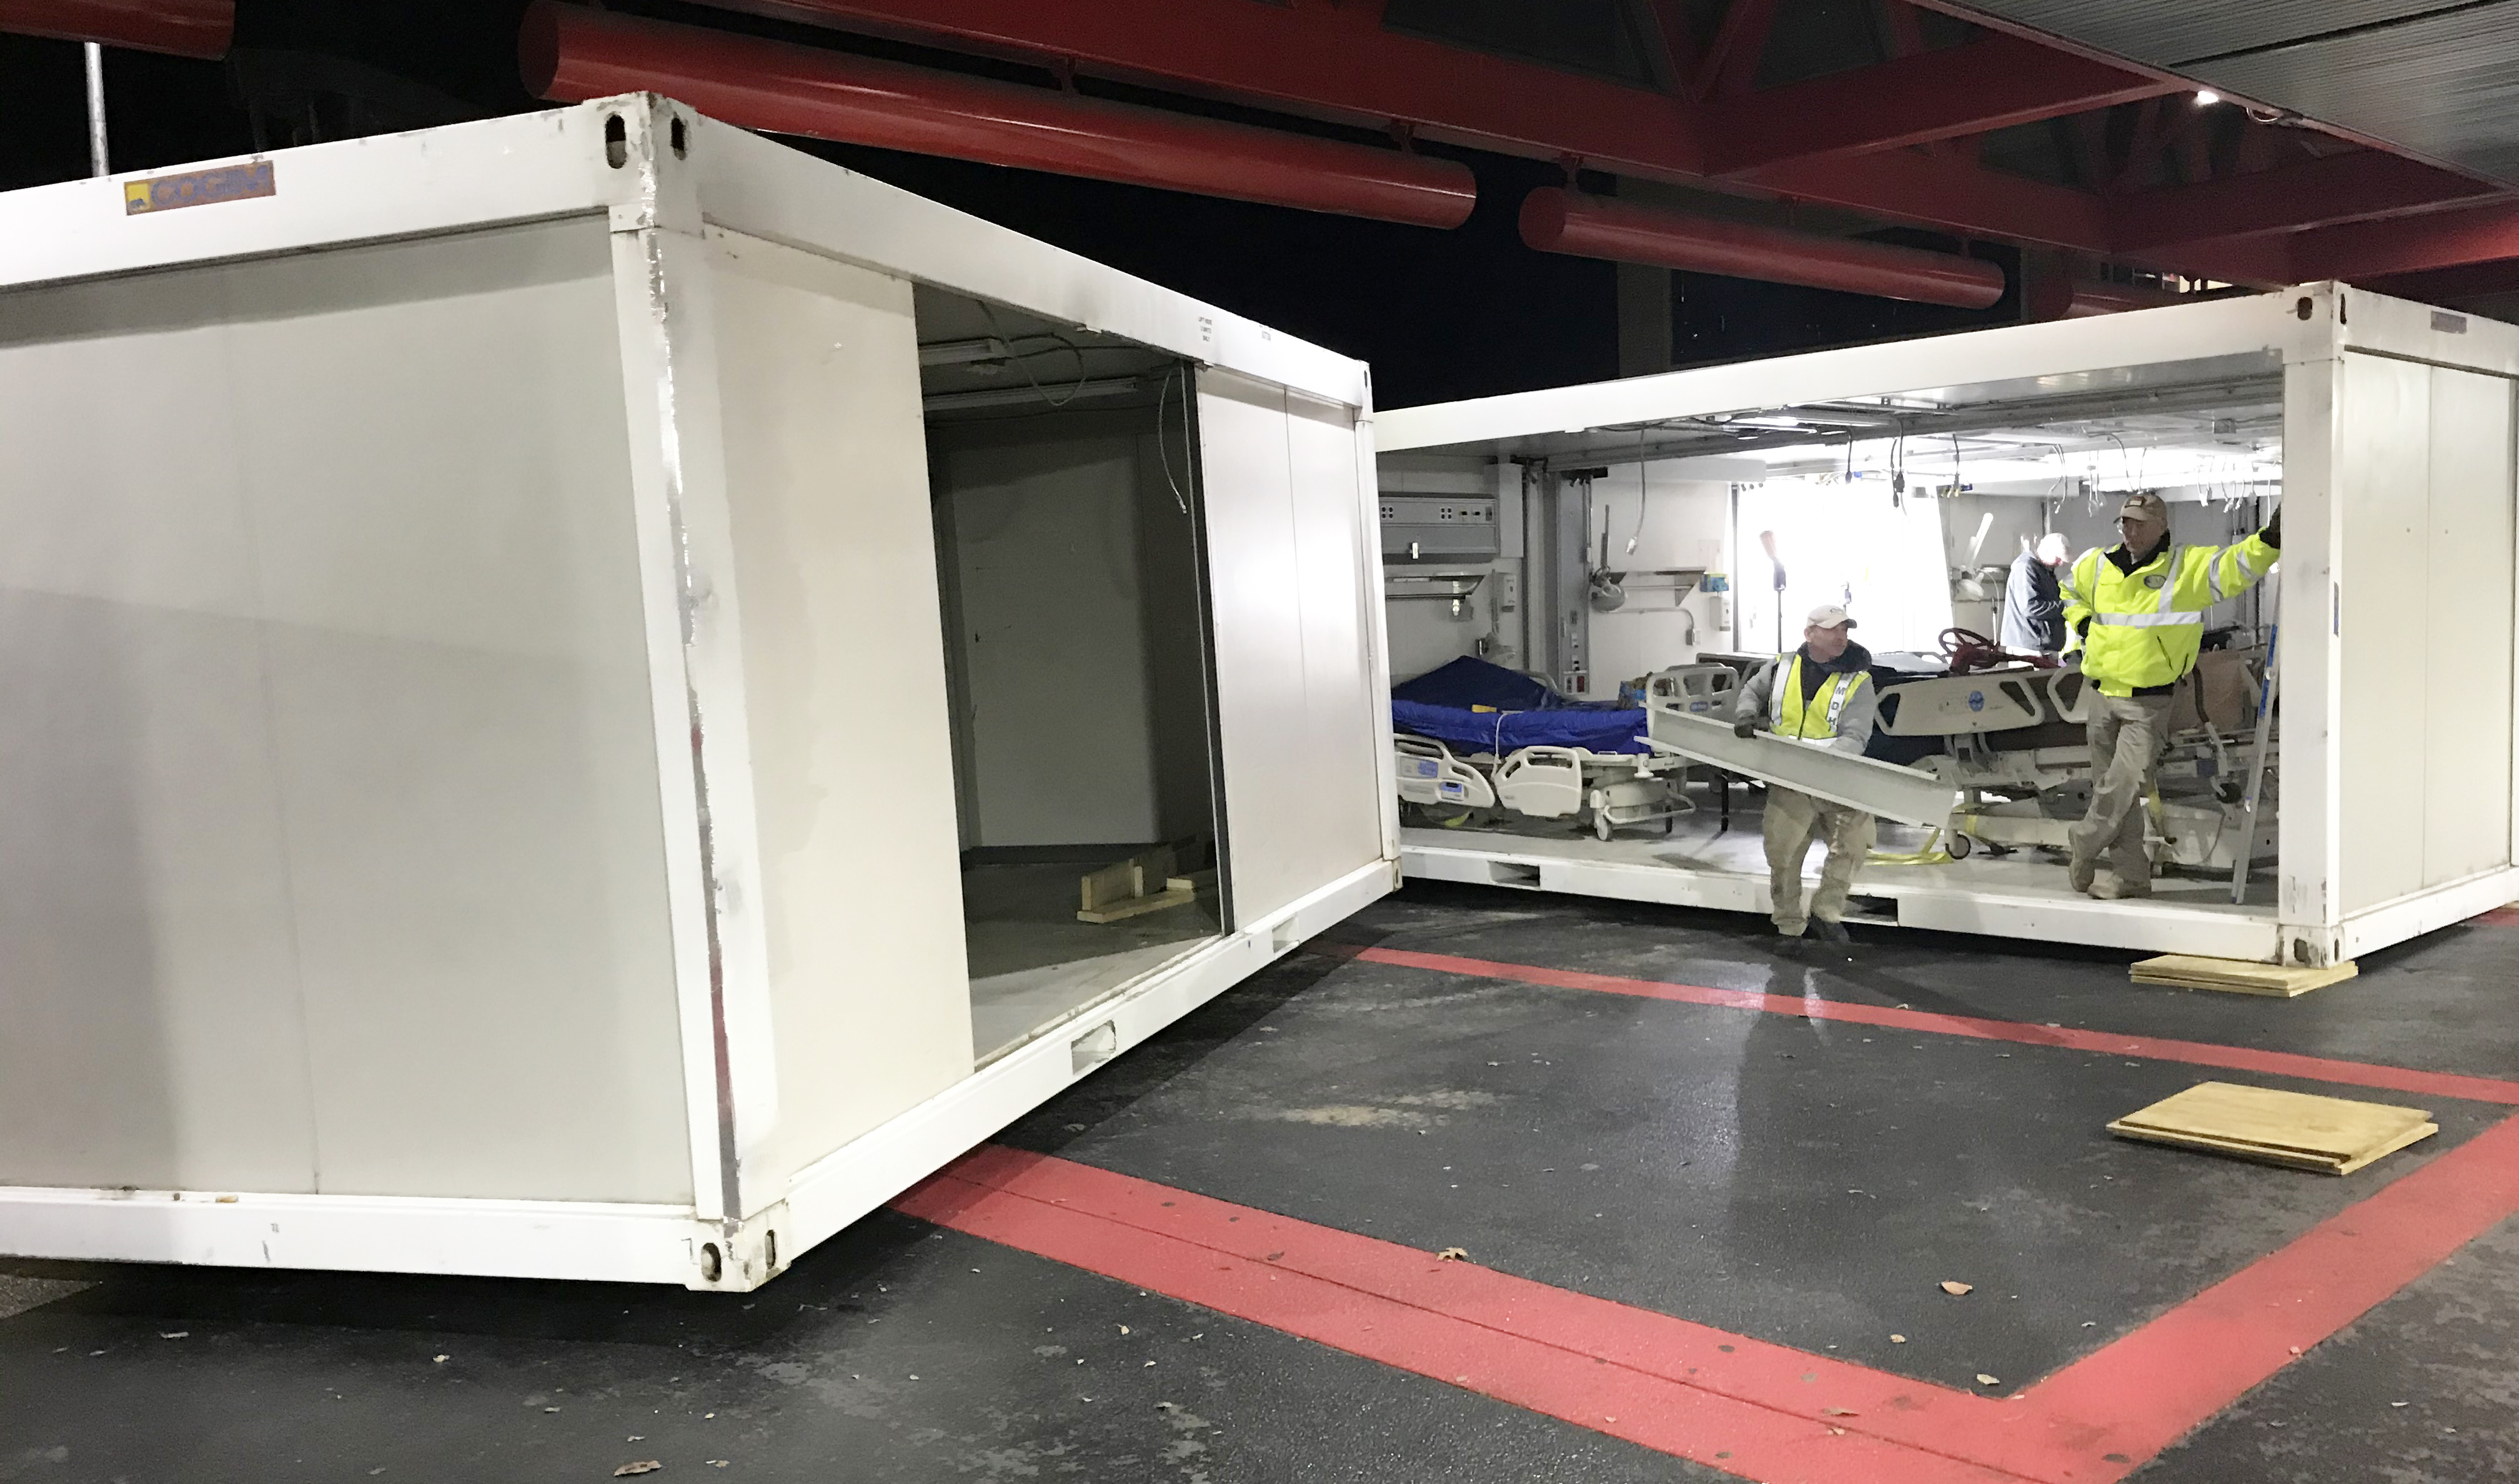 Members of the NCOEMS coordinated team prepared the mobile disaster hospital for deployment to Atlanta Grady Memorial Hospital.